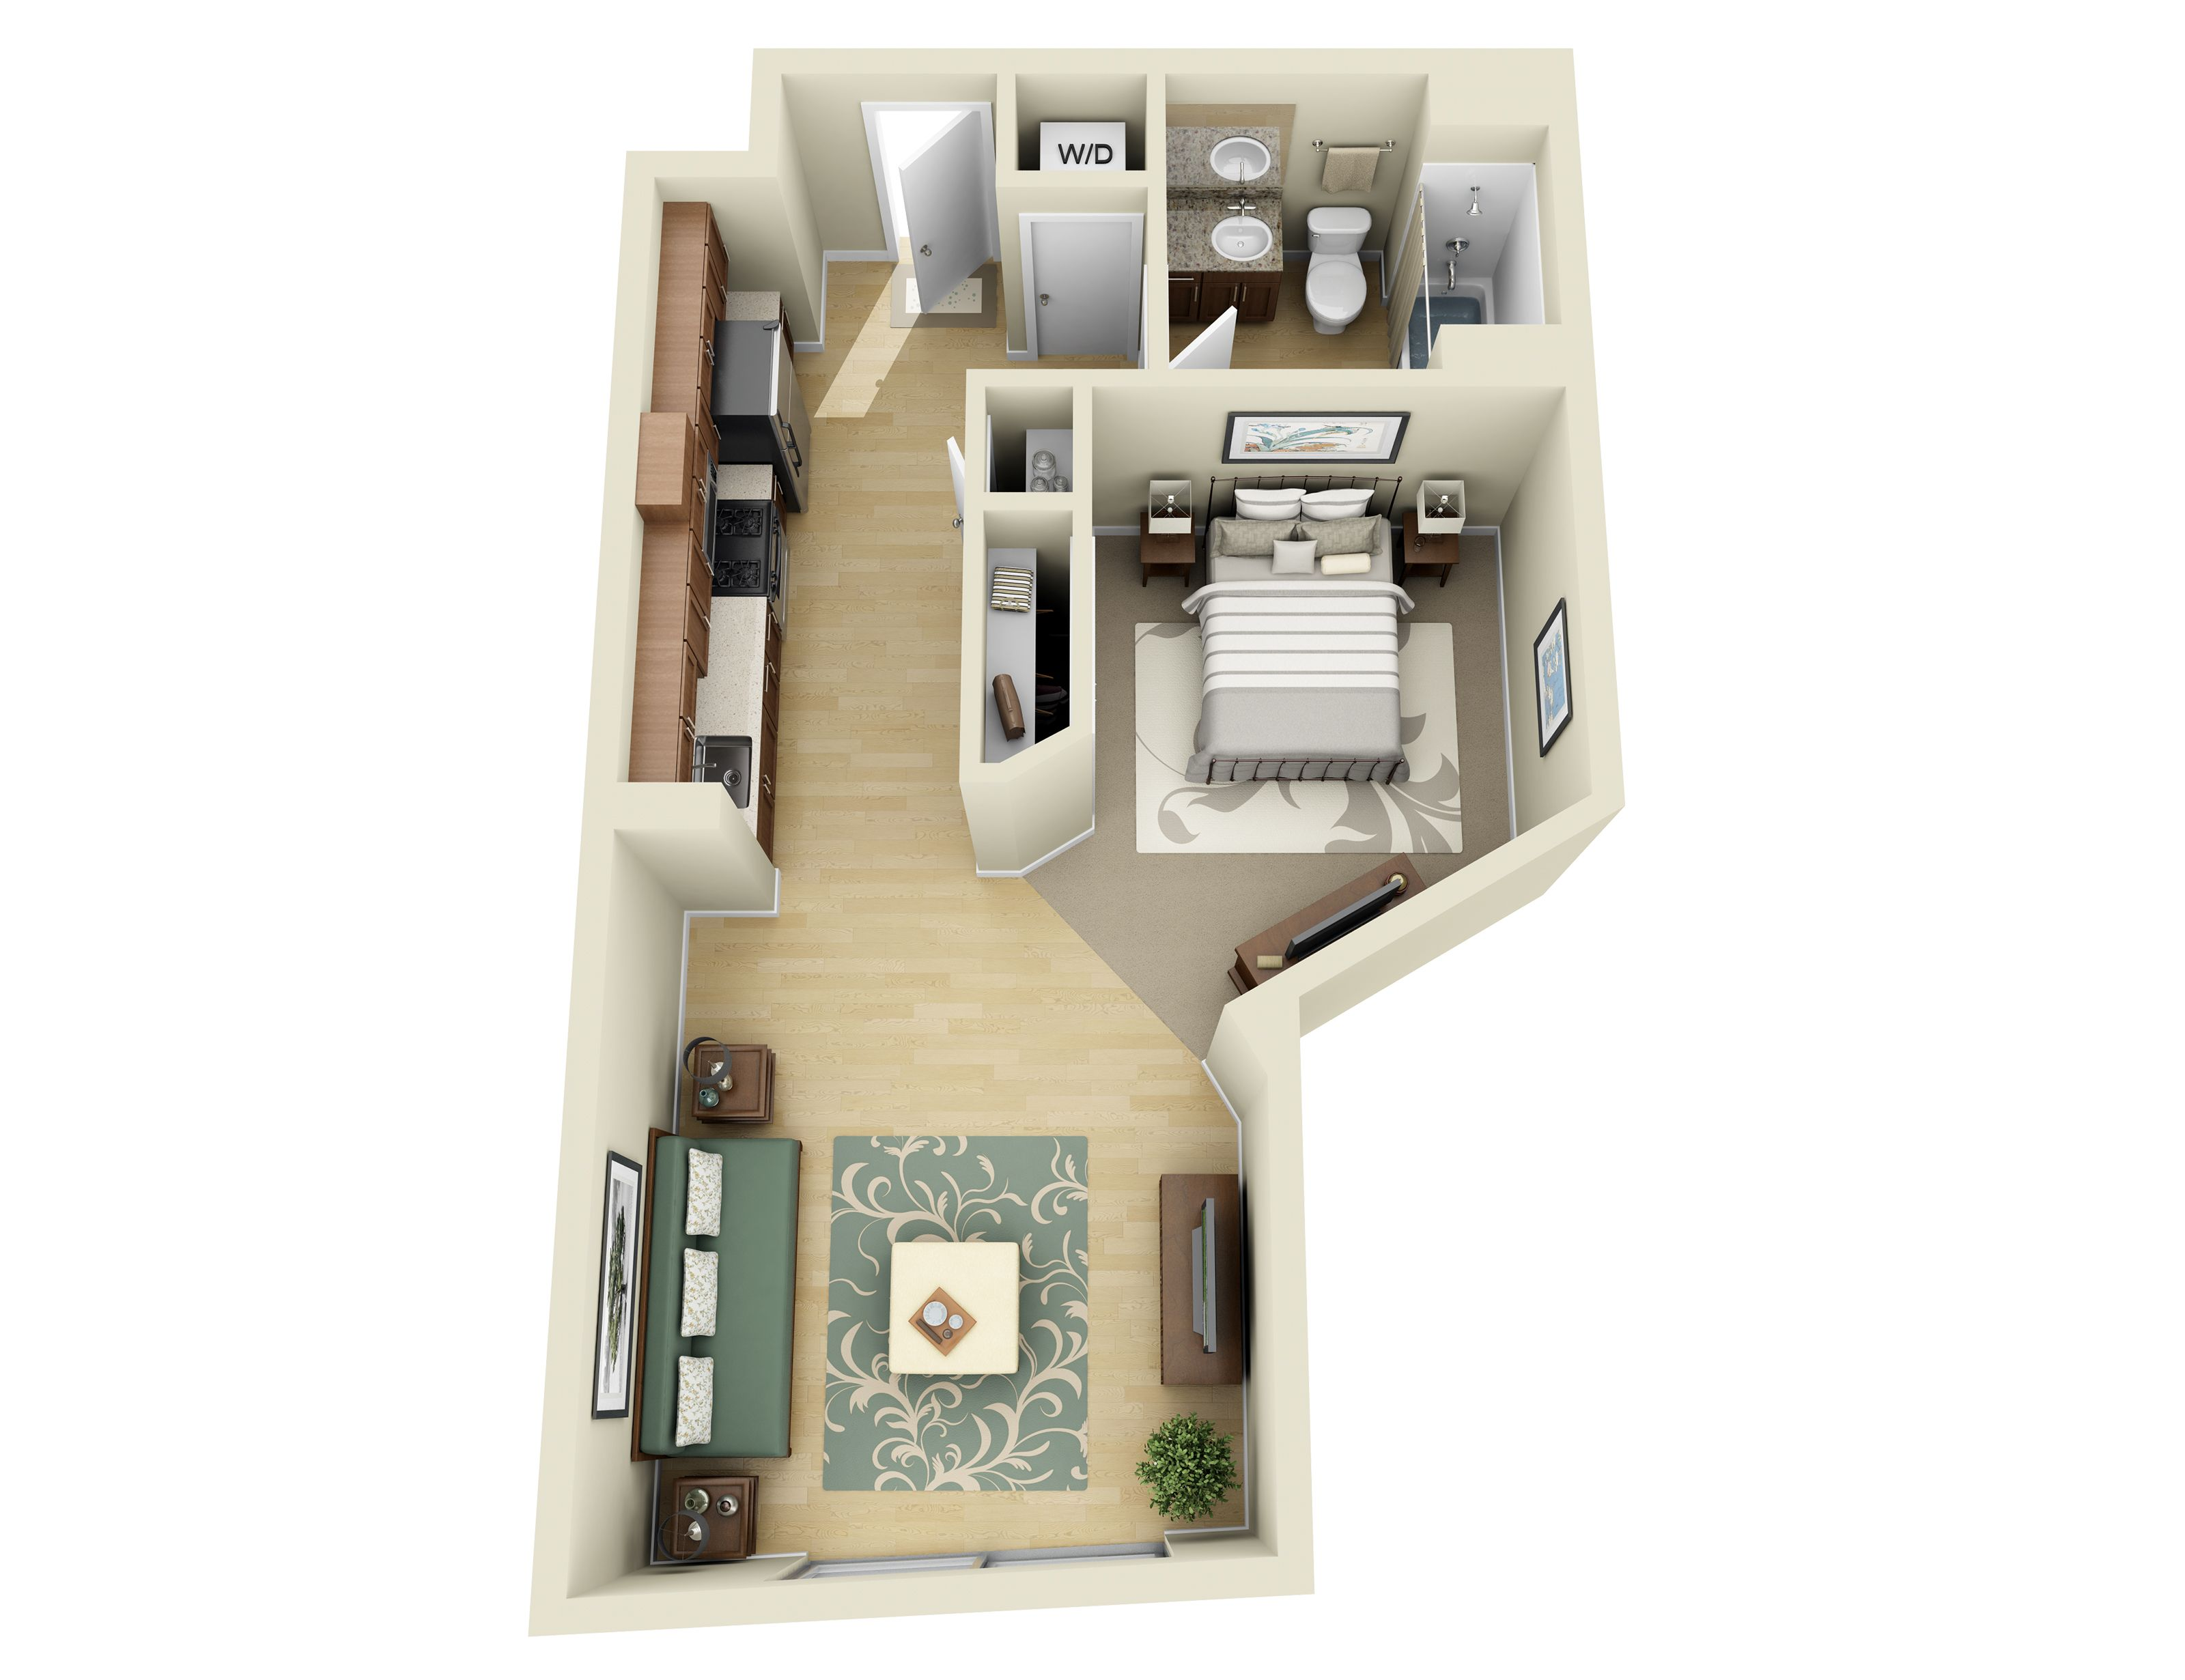 Studio 1 2 And 3 Bedroom Apartments In Los Angeles 1 Bedroom Apartment Apartment Layout Bedroom Layouts For Small Rooms